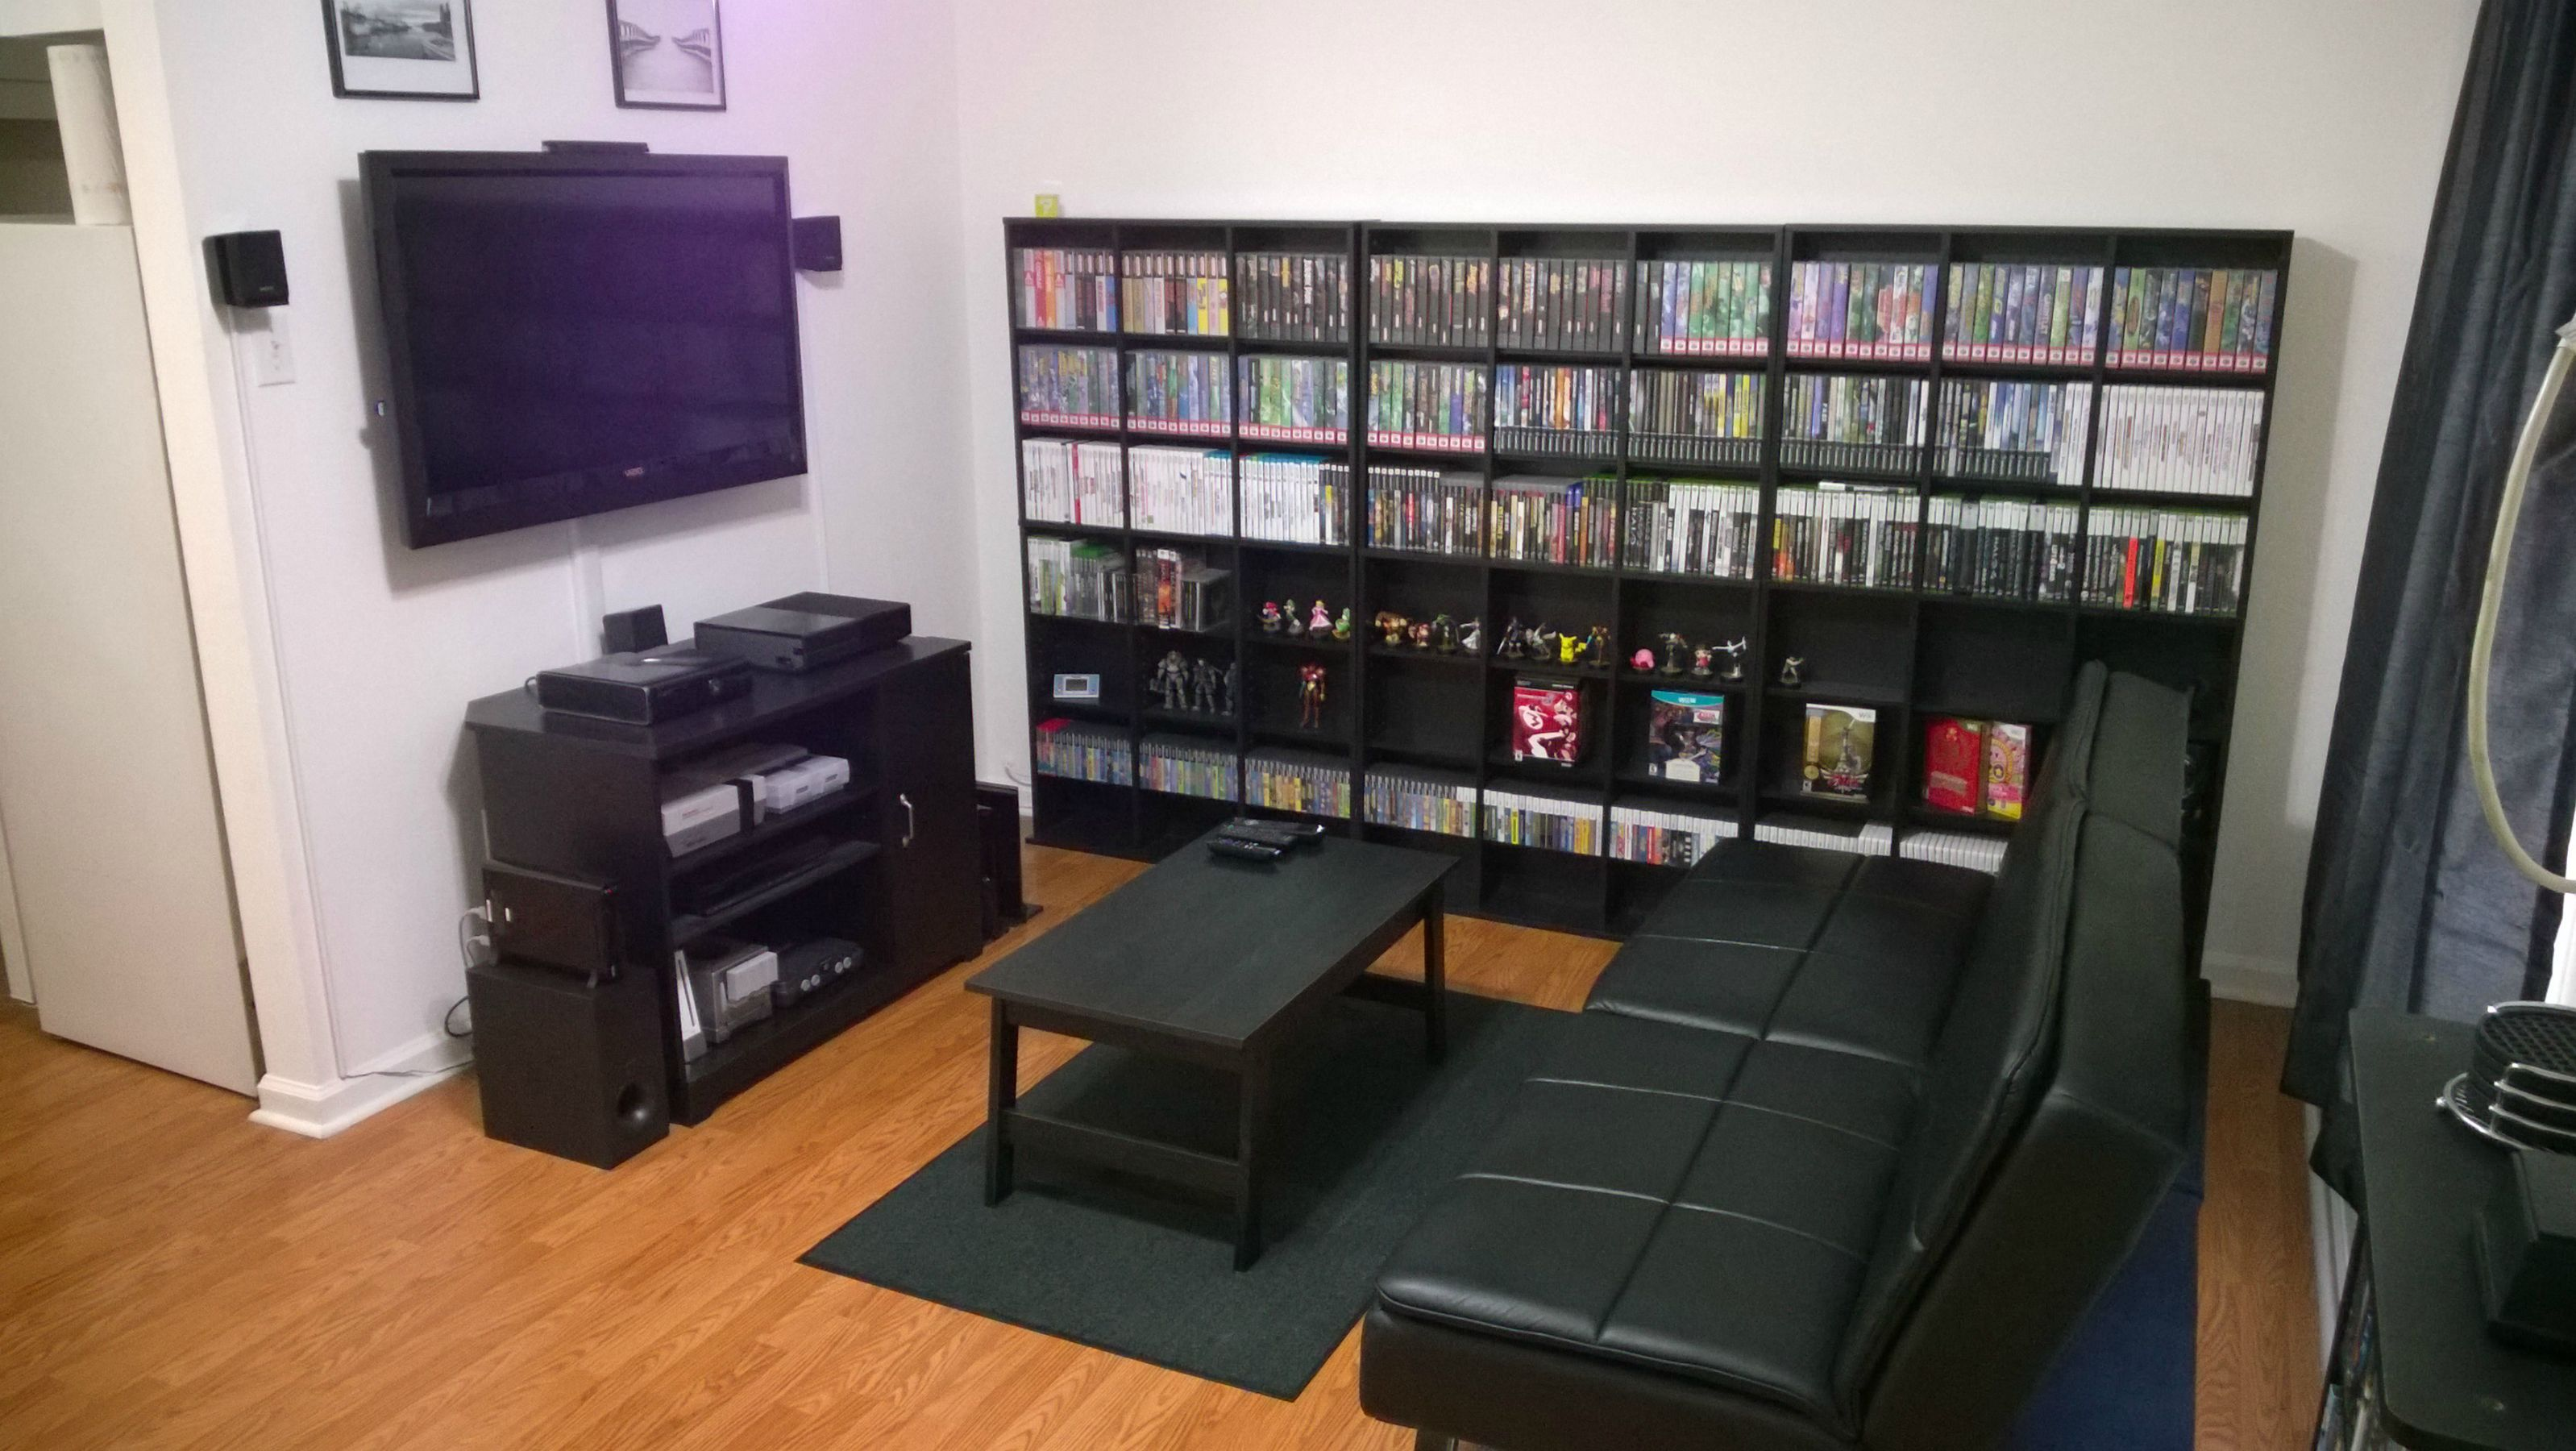 My gaming living room 1 7 15 game rooms video game rooms and room Room decorating games for adults